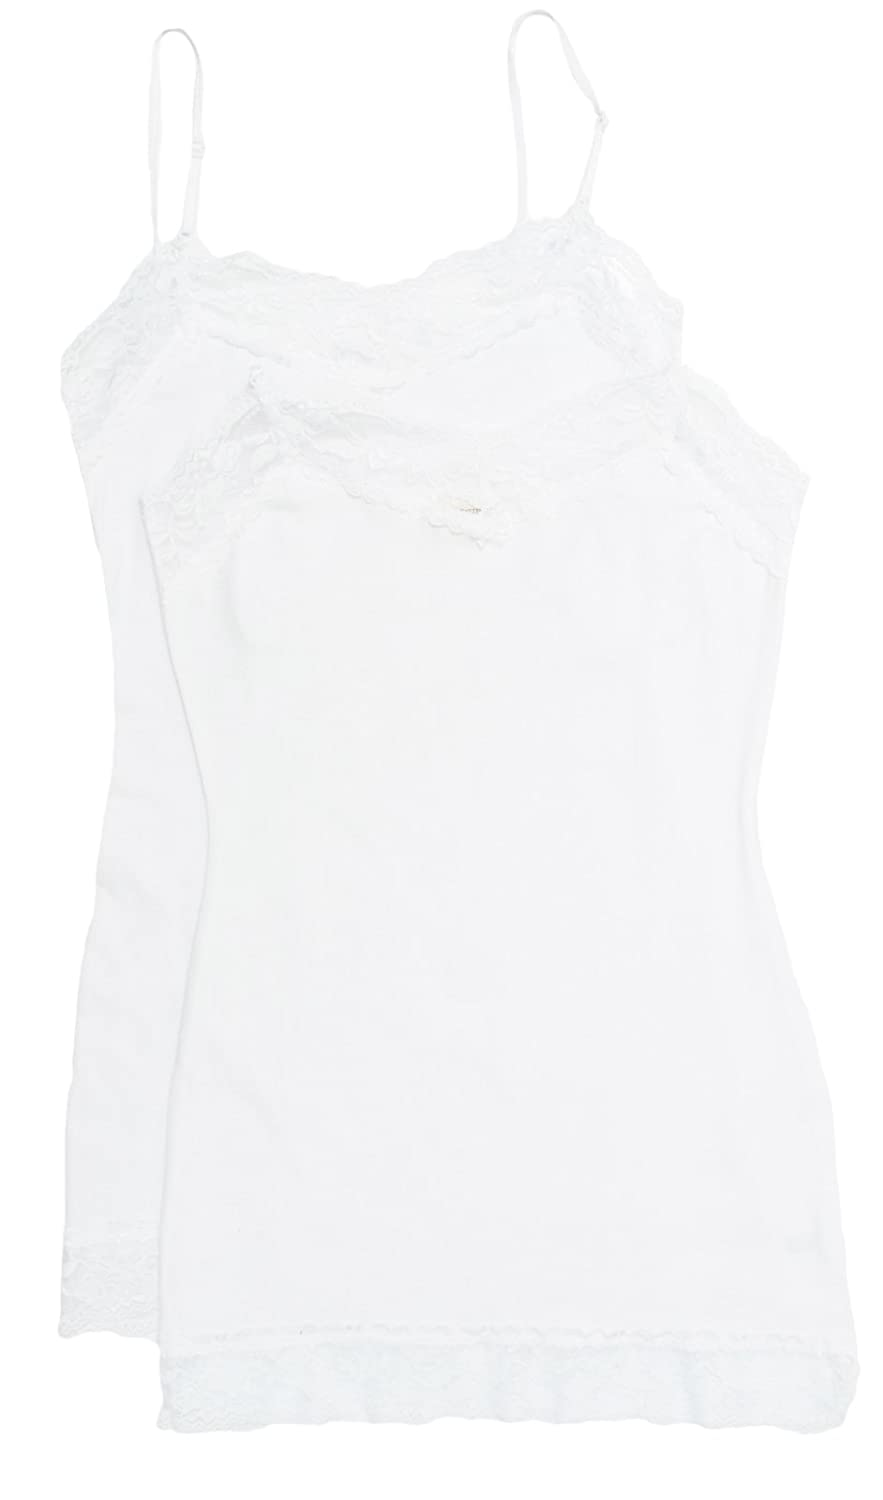 2 Pack Zenana Women's Lace Trim Tank Tops Med White, White